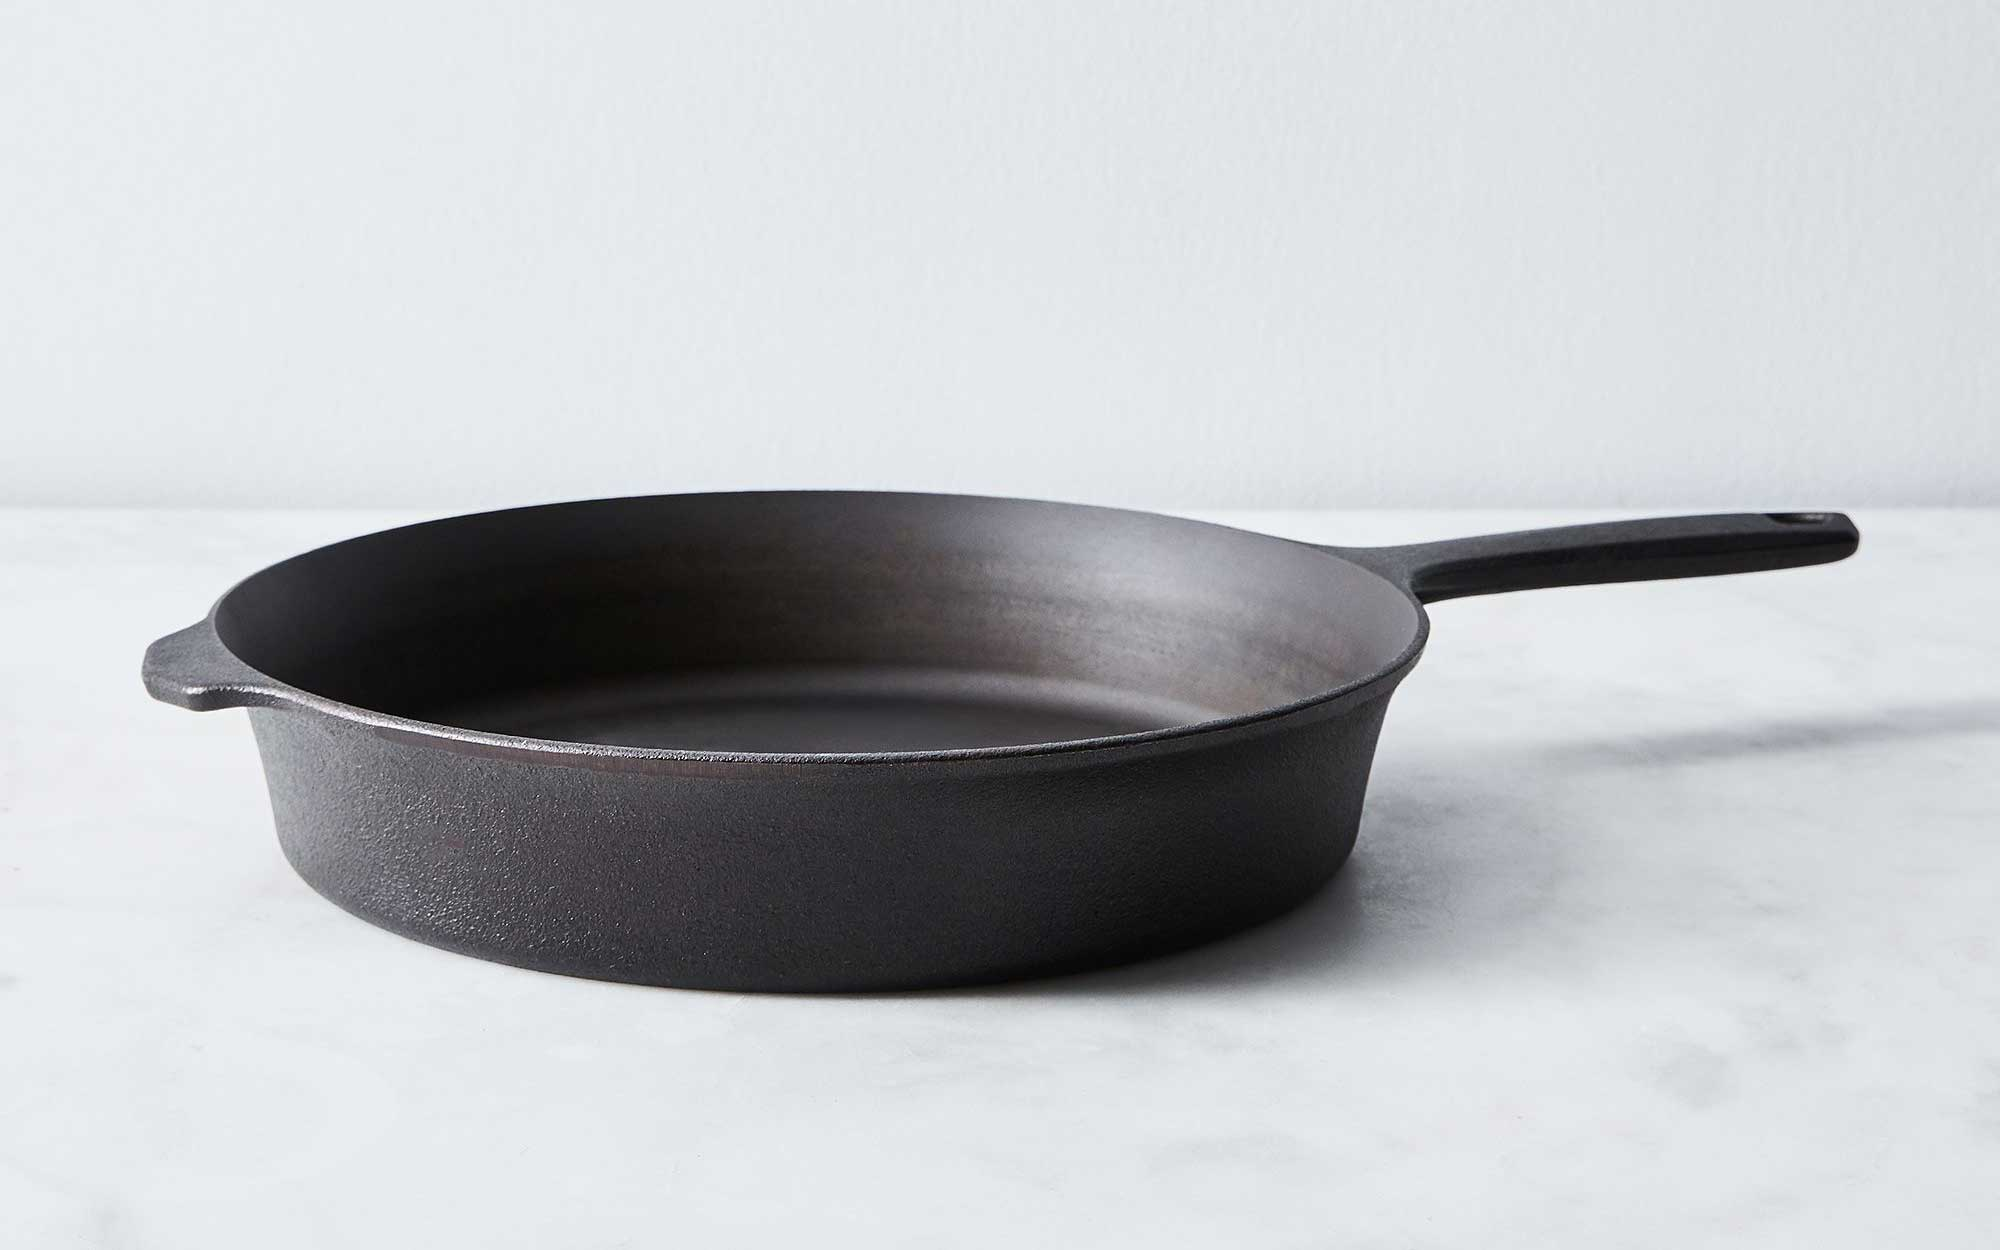 To Get: Field Cast Iron Skillet No. 8